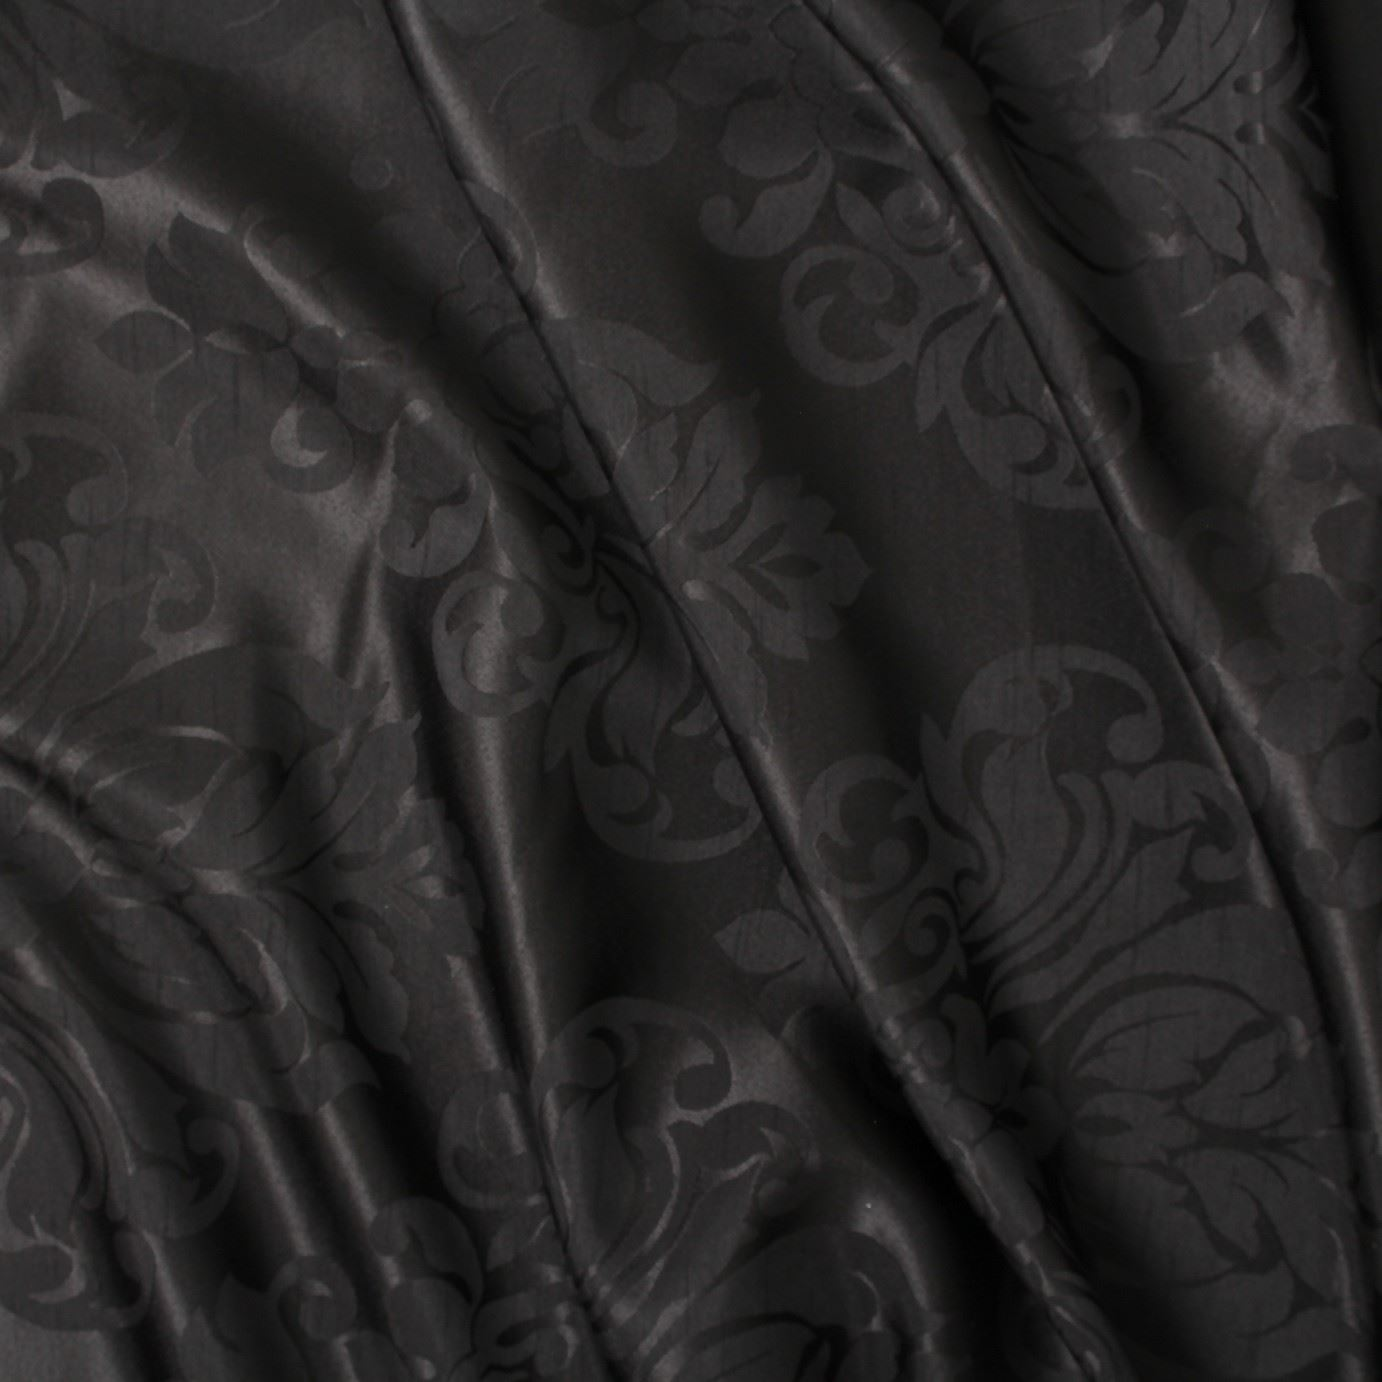 thumbnail 3 - FLORAL DAMASK FAUX SILK JACQUARD CURTAIN UPHOLSTERY FABRIC MATERIAL 12 COLOURS